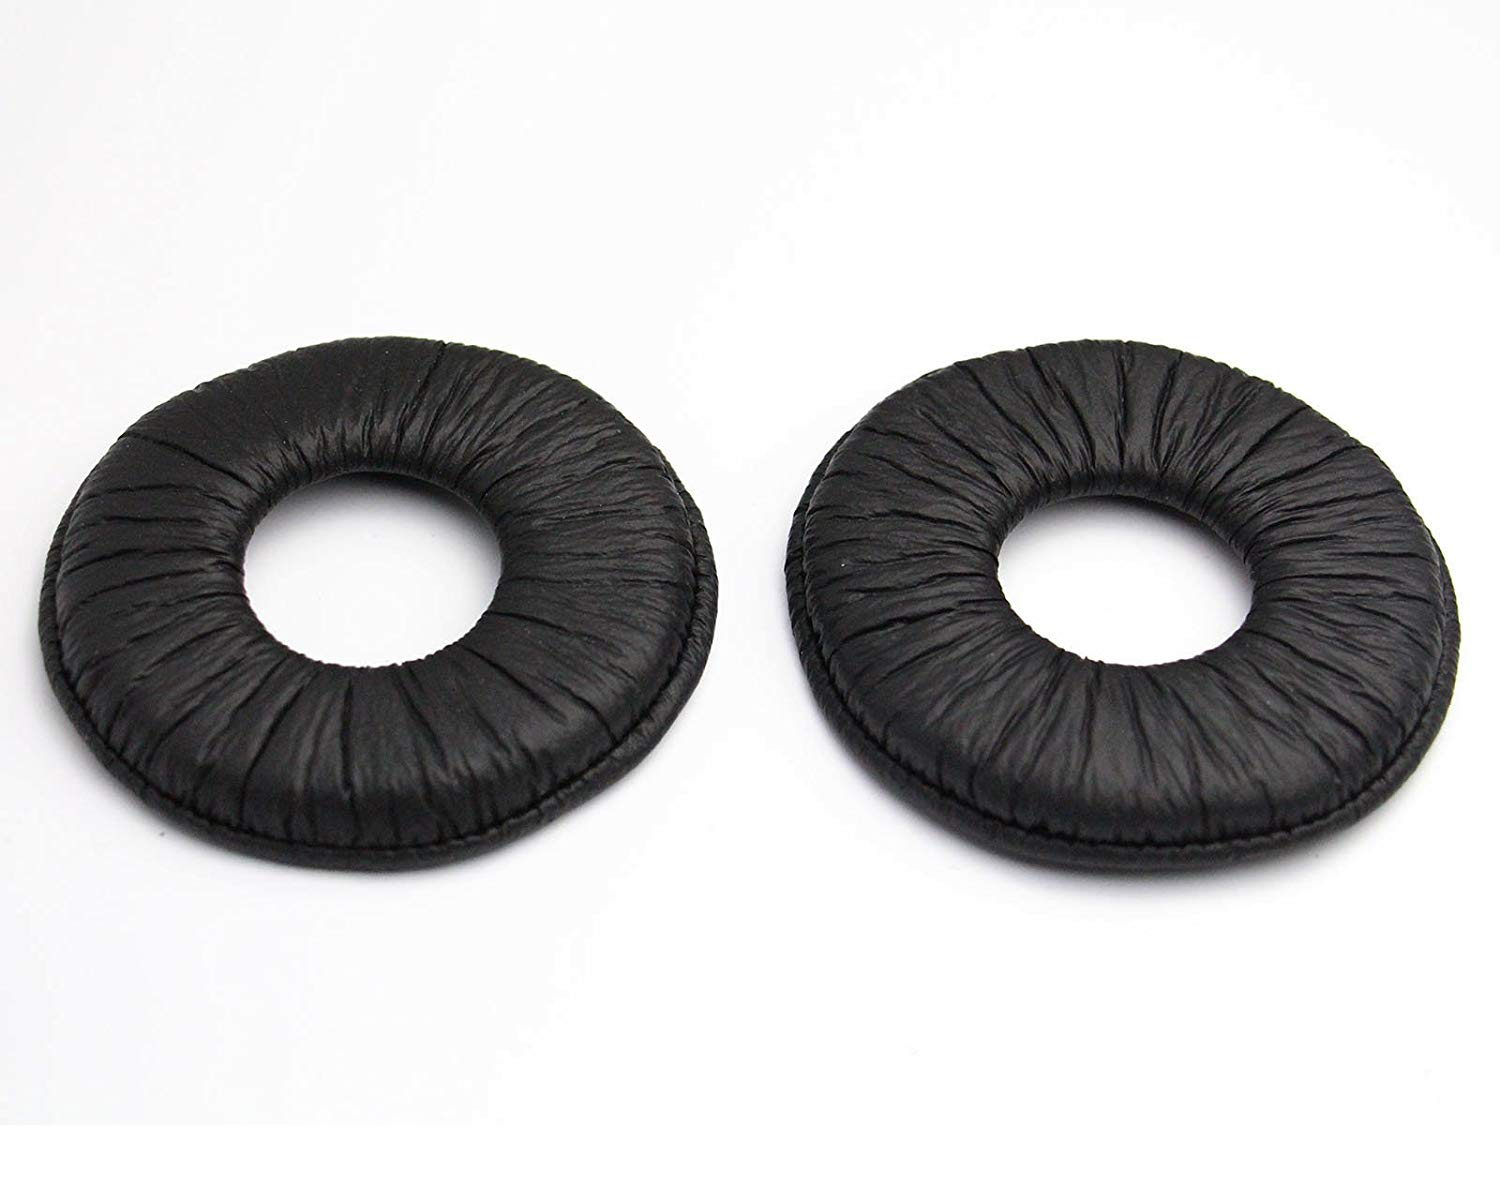 ShineCozy Premium Headphones Earpads Protein Leather Foam Ear Cushions,Headset Ear Pads Spare Replacement Parts (For Sony MDR-V150 V250 V300 V100 70MM Black J-27-Black)